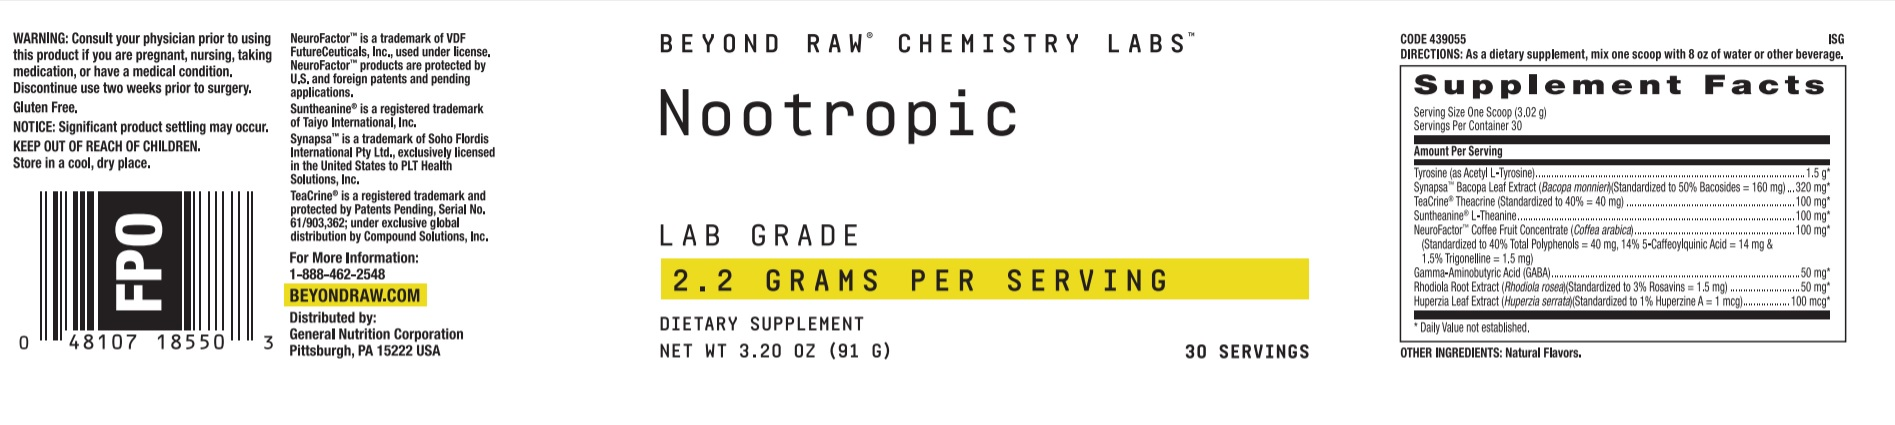 Beyond Raw Chemistry Labs Nootropic Review - Mental